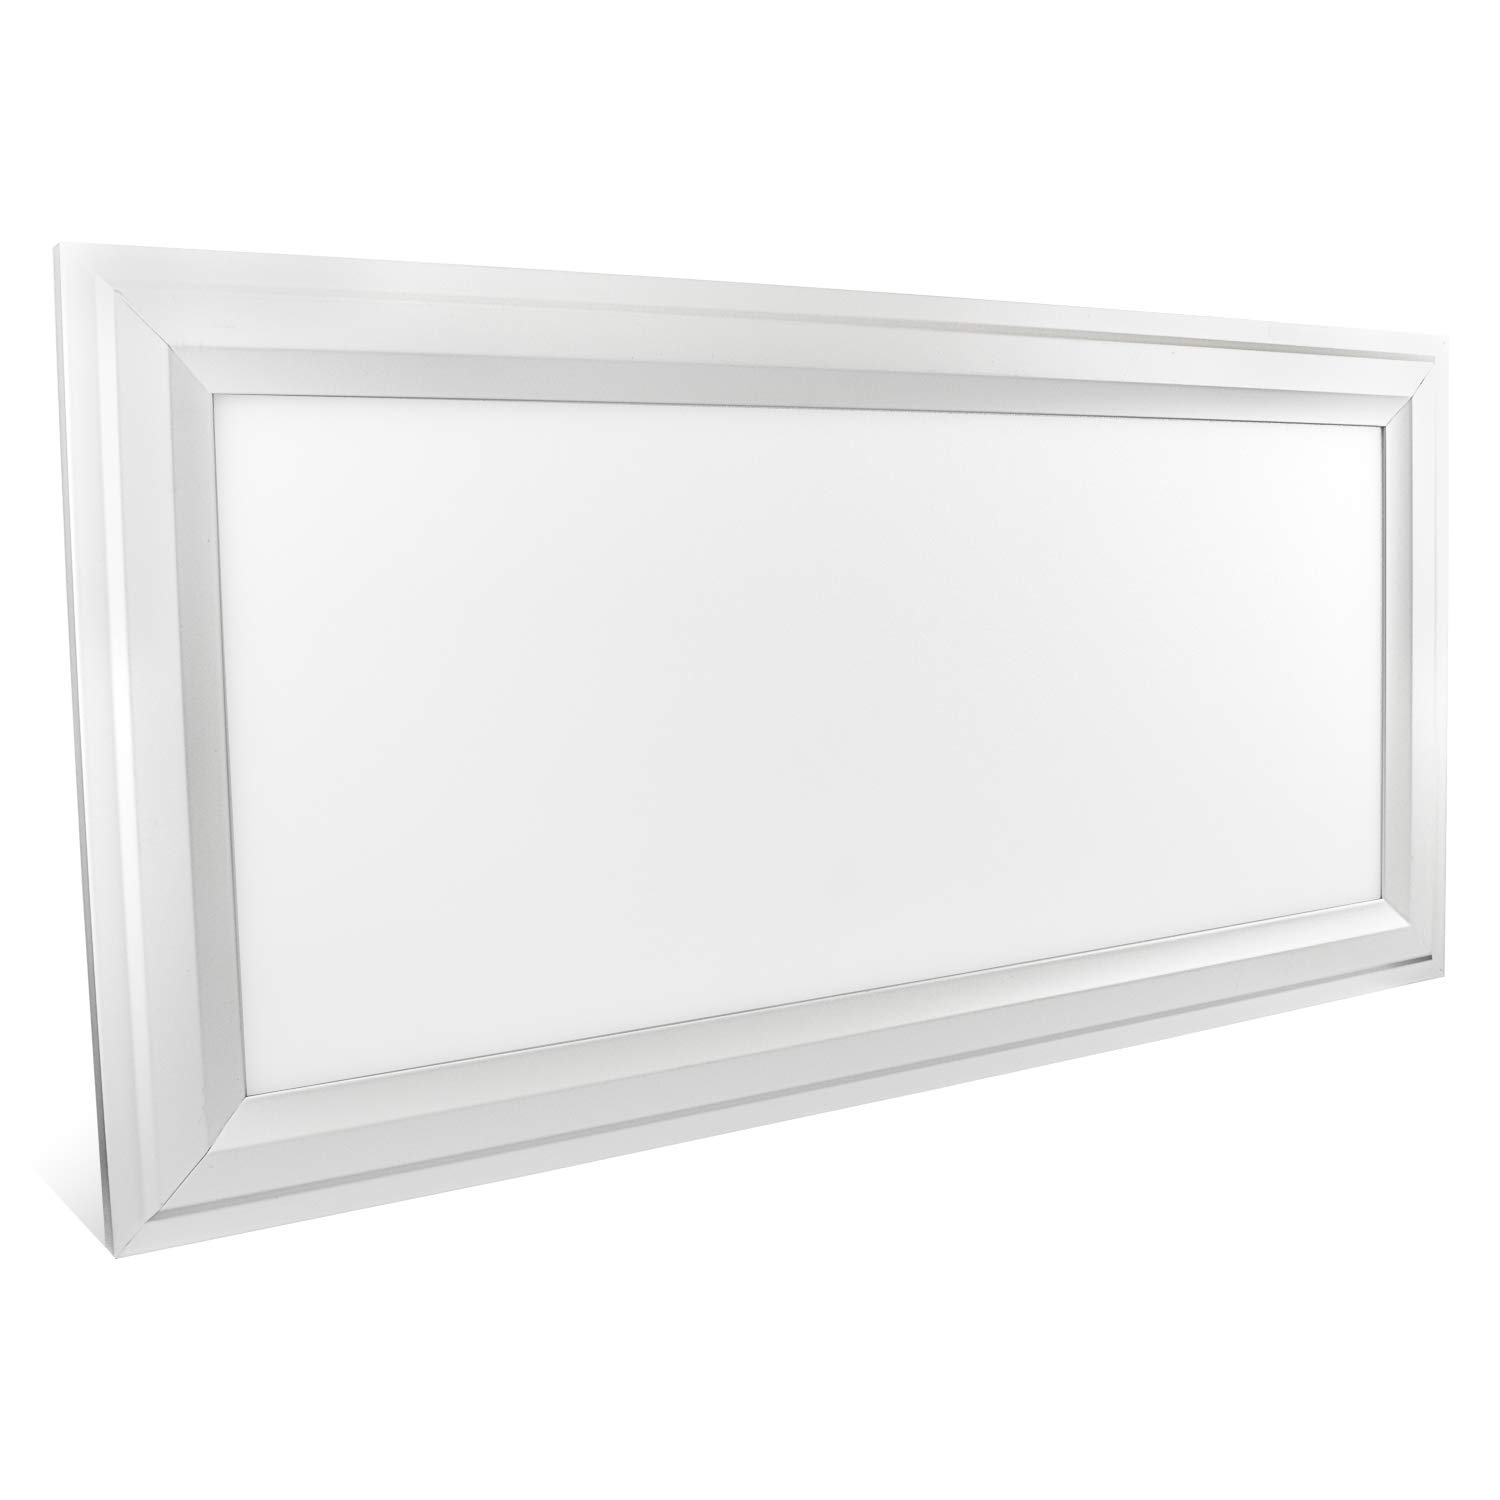 Luxrite 1x2 FT LED Panel Light Fixture, Ultra Thin Edge Lit 25W, 5000K Bright White, 2250 Lumens, Dimmable, Flushmount Surface Mount LED 12x24 Inch Drop Ceiling Light Panel, UL Listed